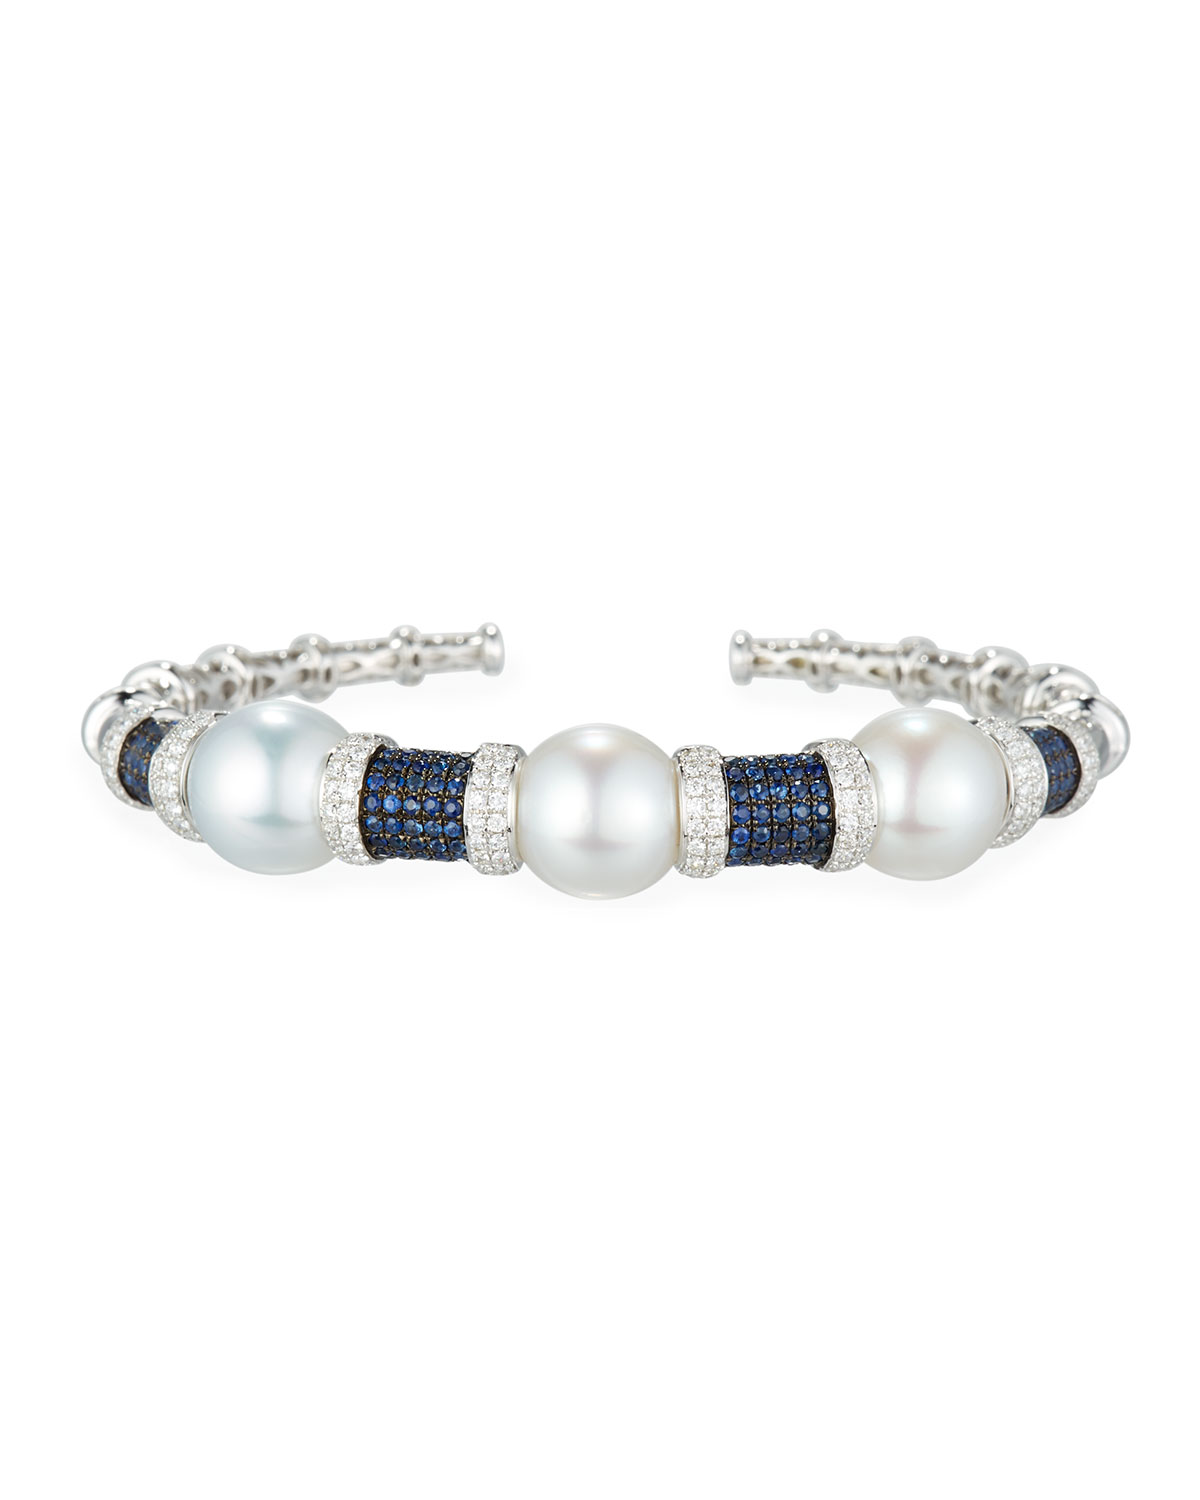 BELPEARL South Sea Pearl Bracelet With Blue Sapphires & Diamonds In 18K White Gold